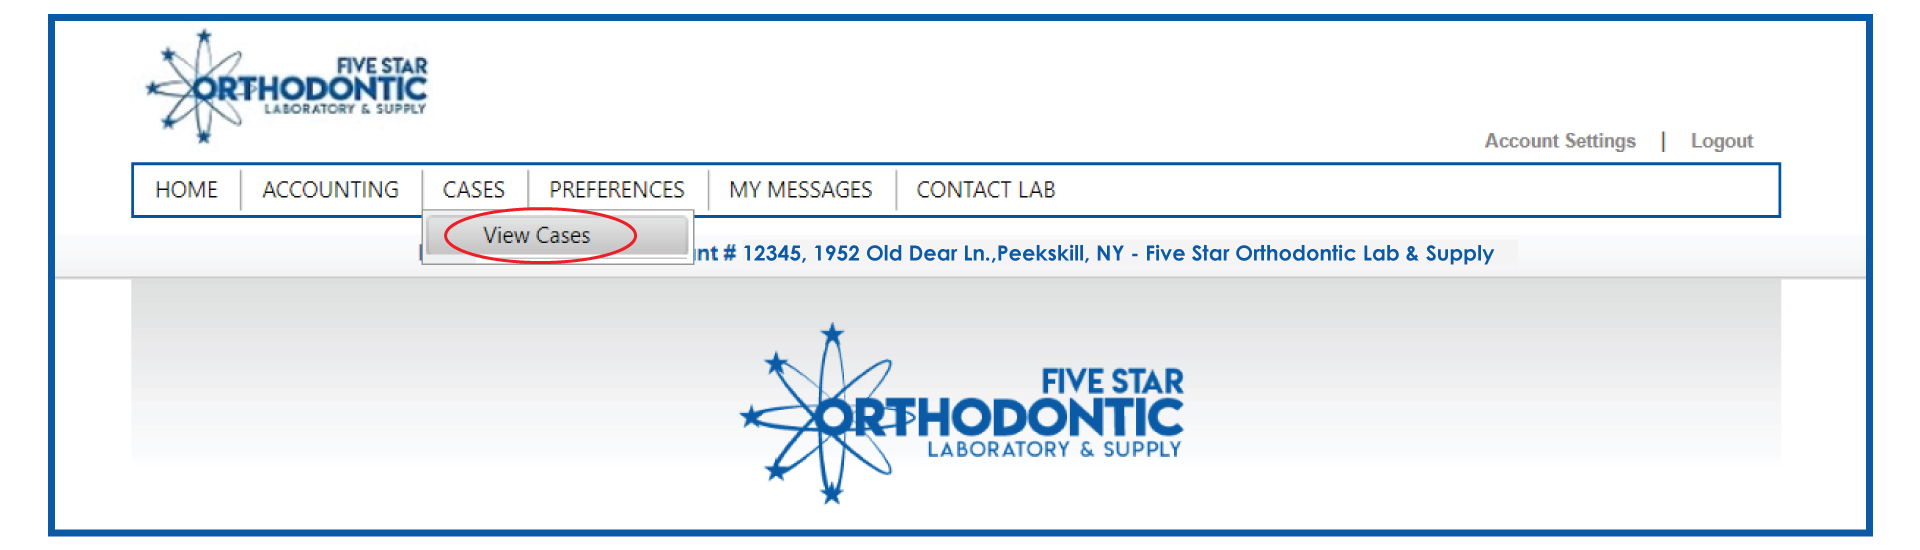 User Guide - Five Star Orthodontic